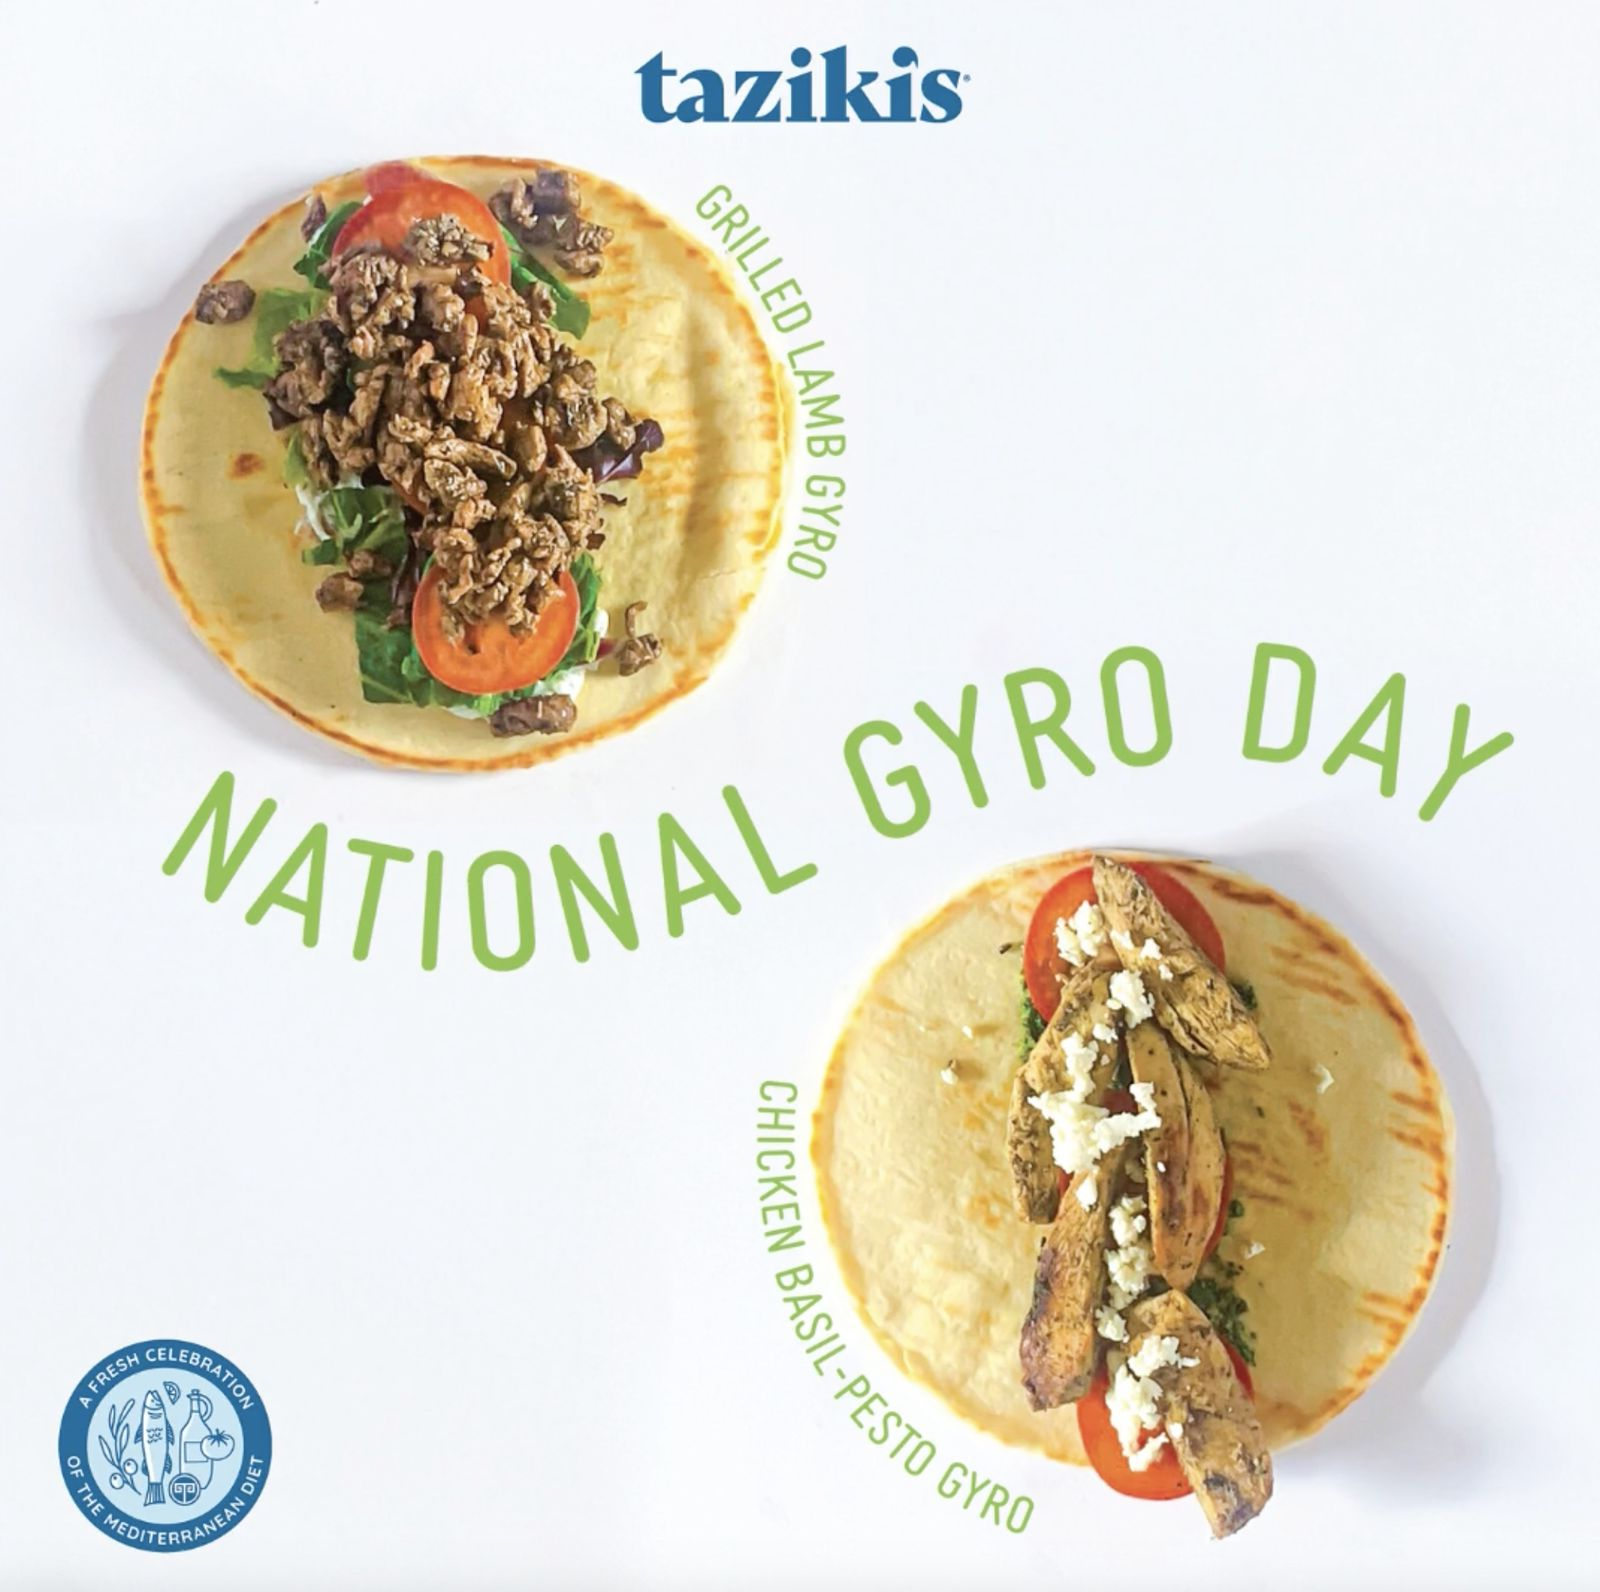 Taziki's Mediterranean Café Celebrates National Gyro Day by Encouraging Customers to Vote by Placing Orders